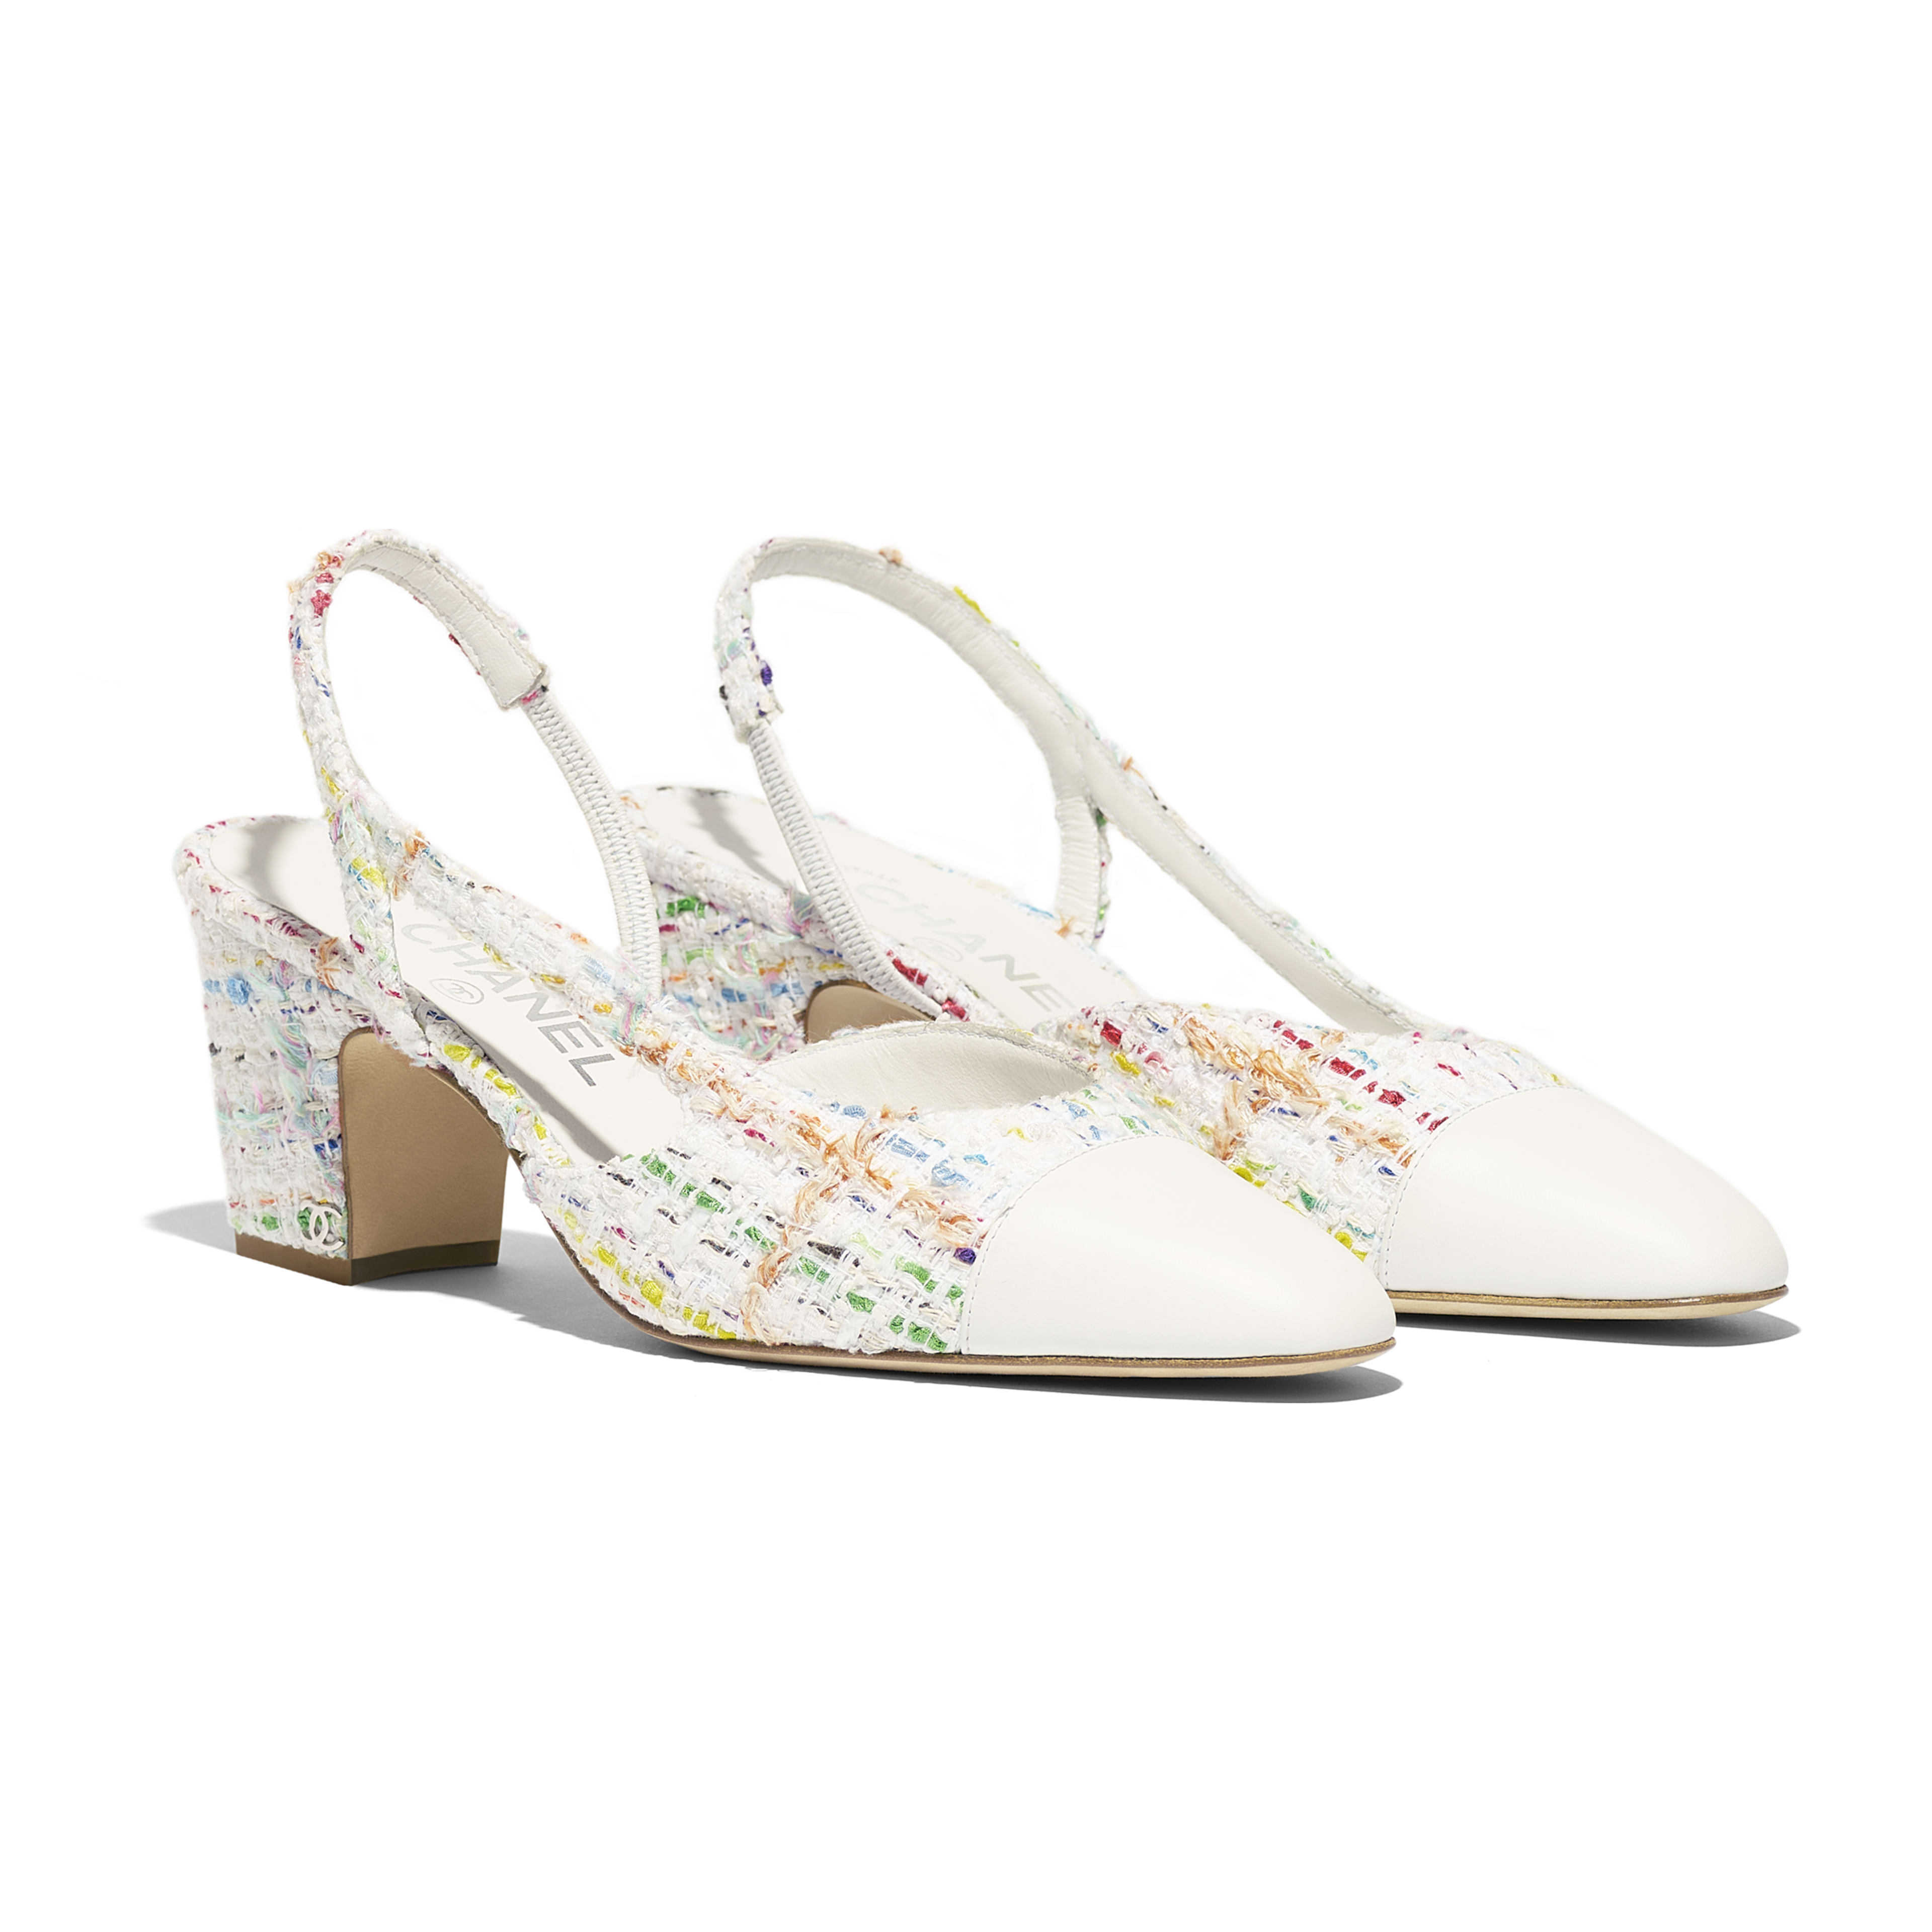 Slingbacks - White, Yellow, Blue & Green - Tweed & Lambskin - Alternative view - see full sized version